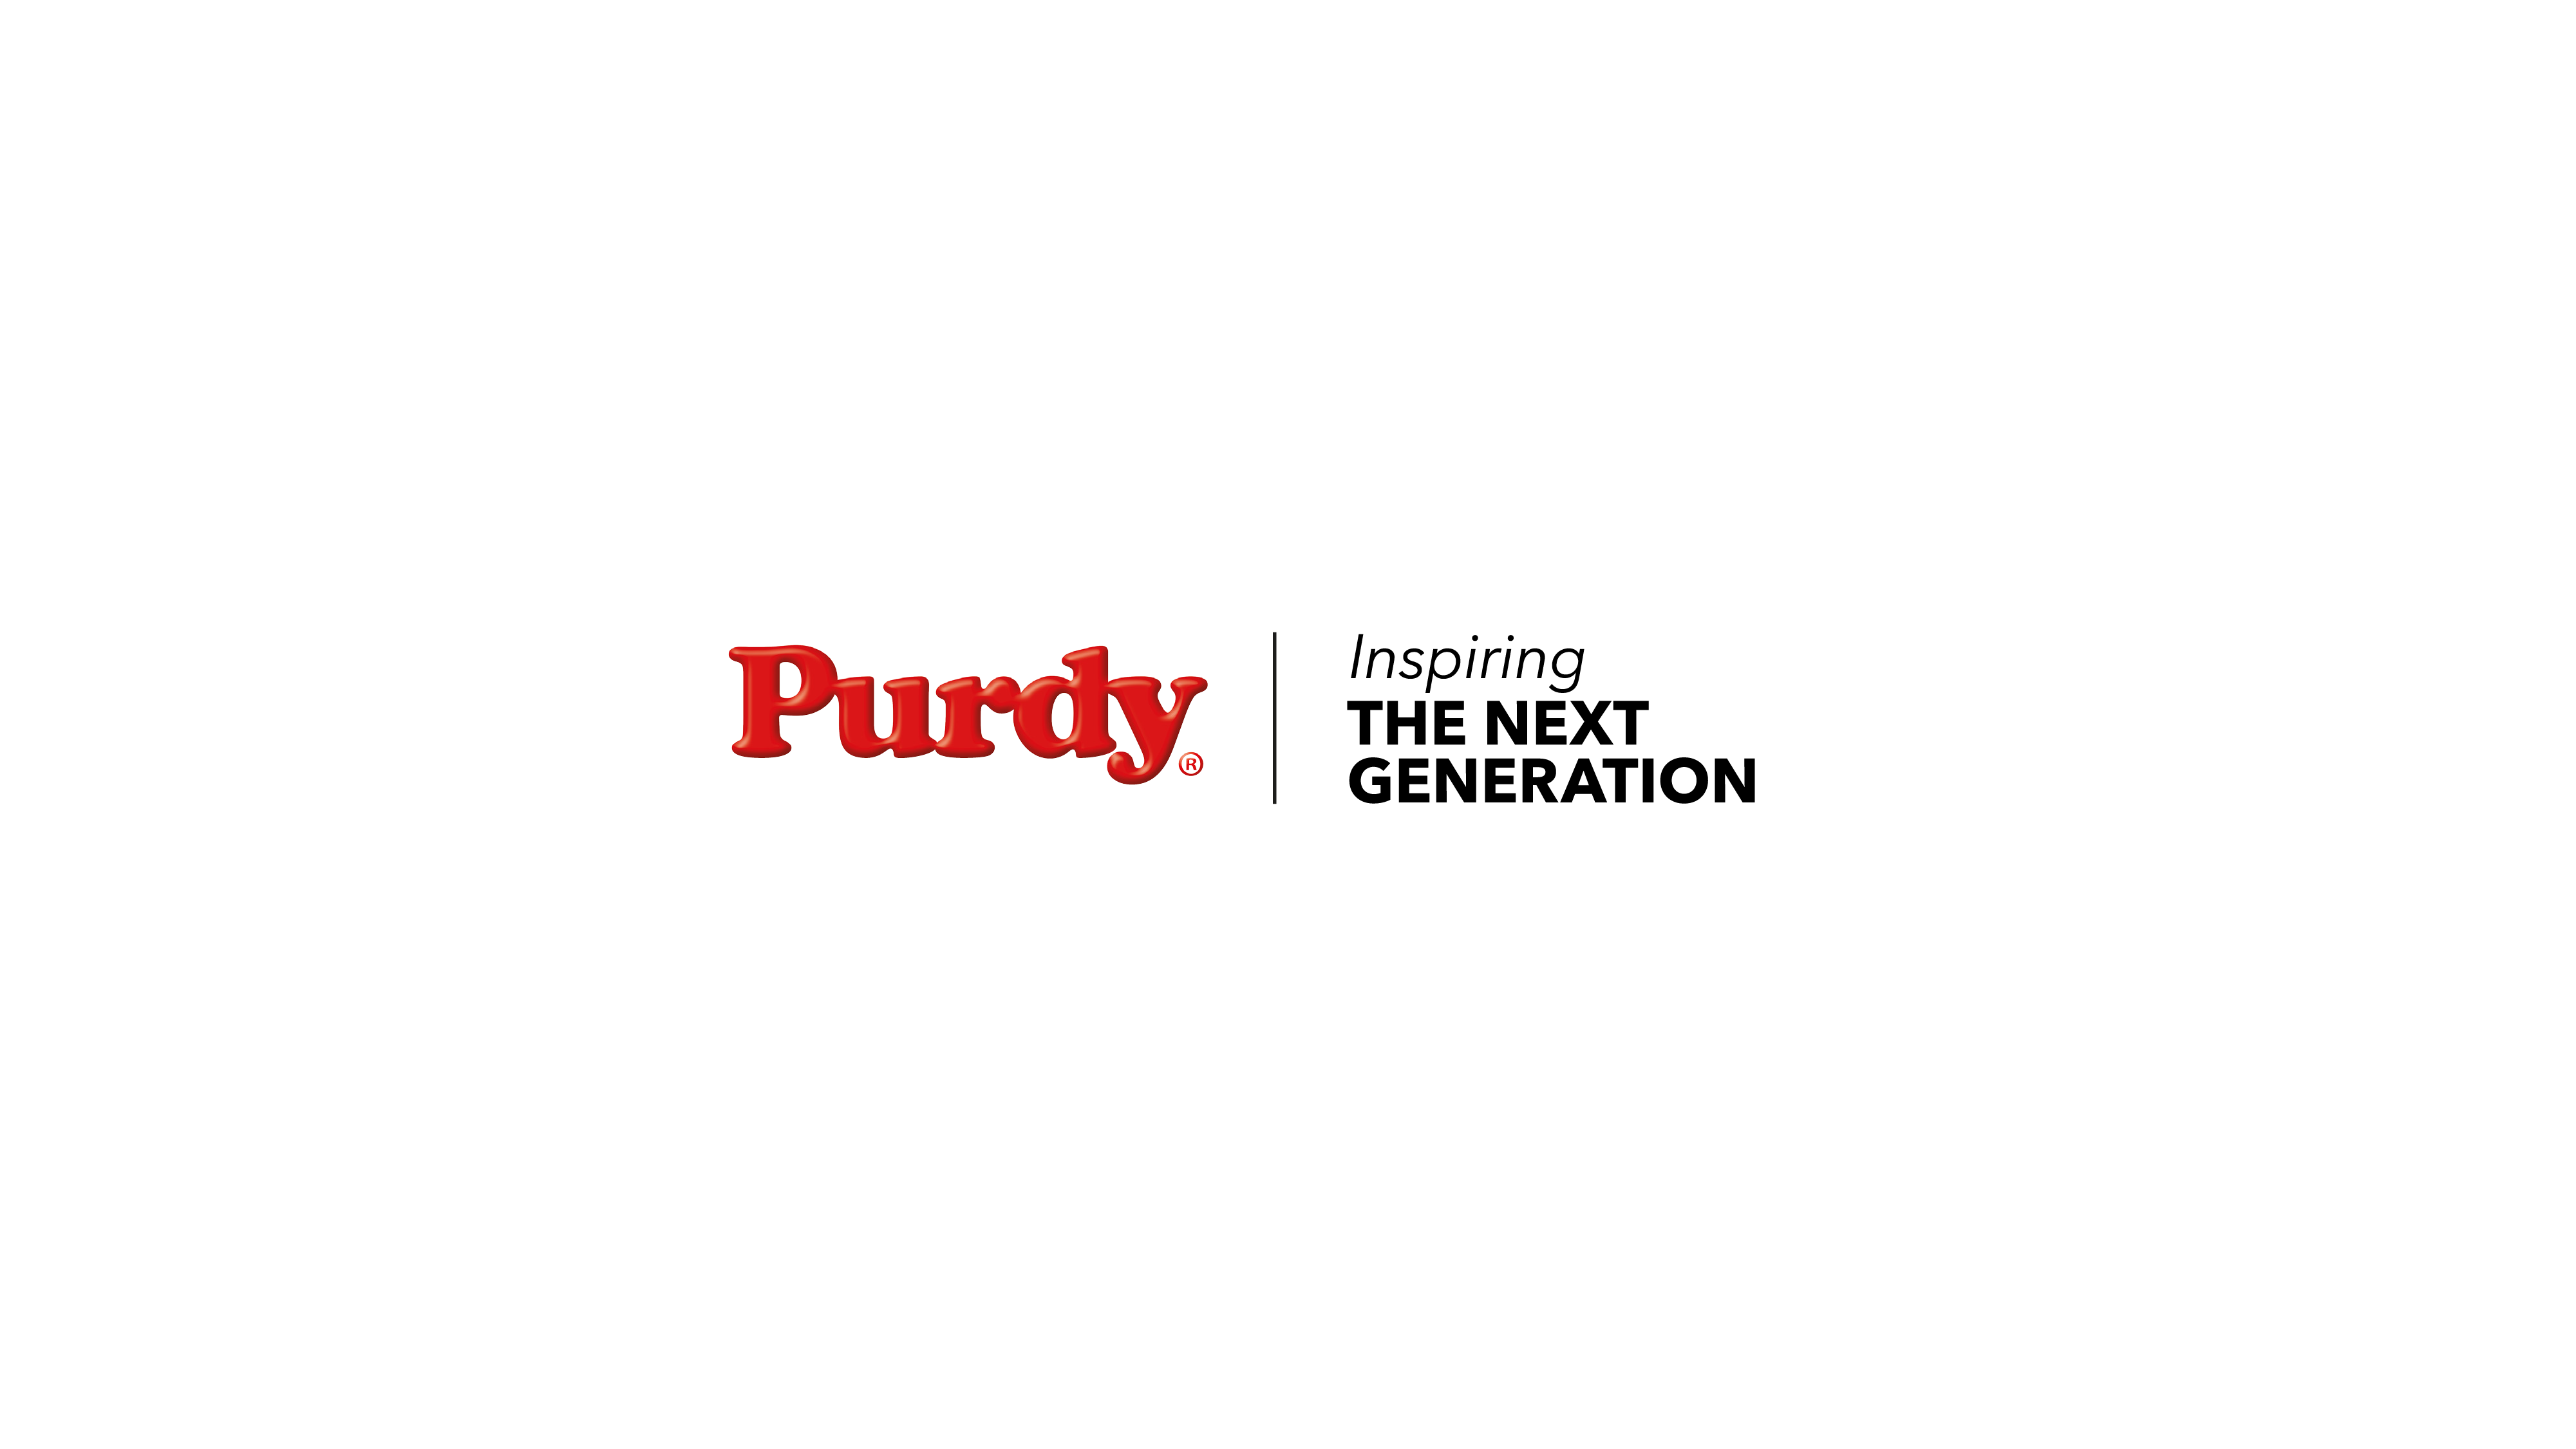 Purdy is inspiring the next generation with new campaign